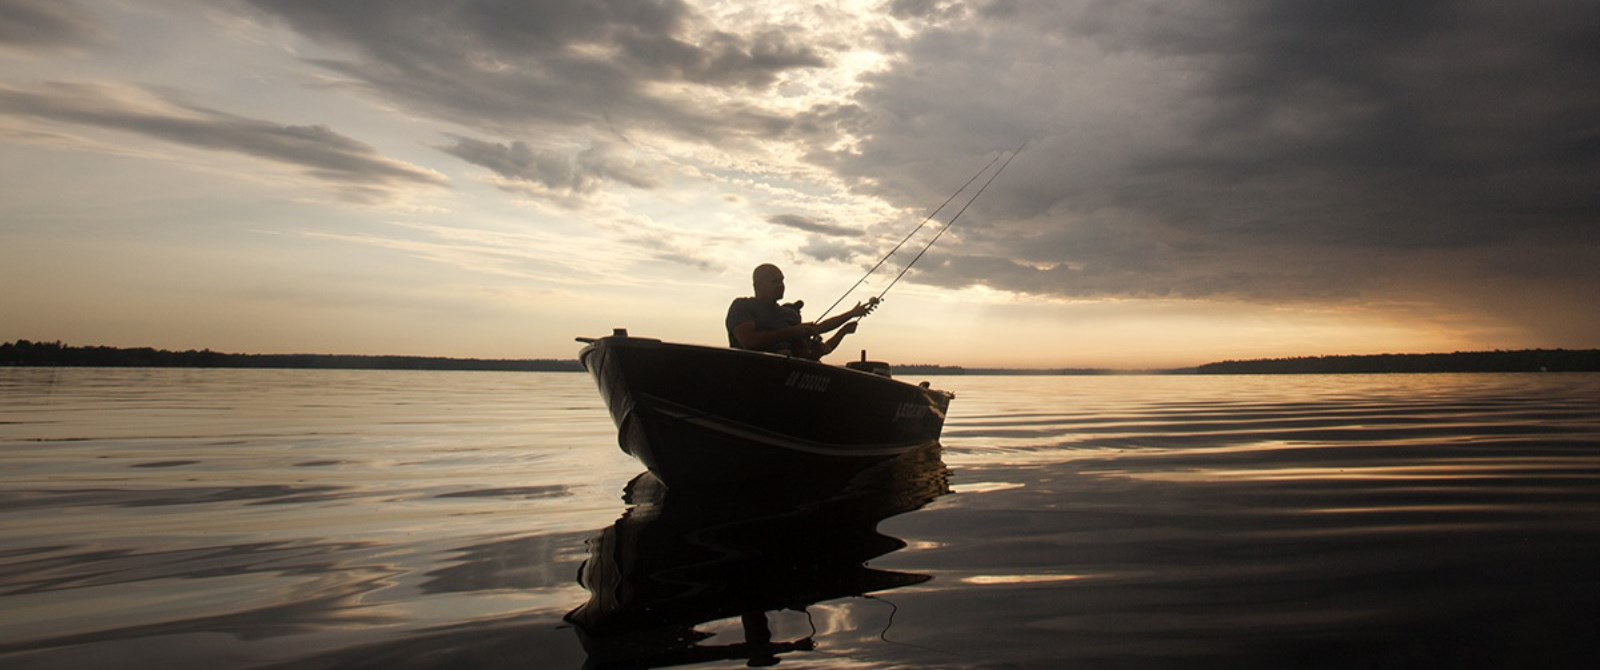 Fishing in boat at sunset